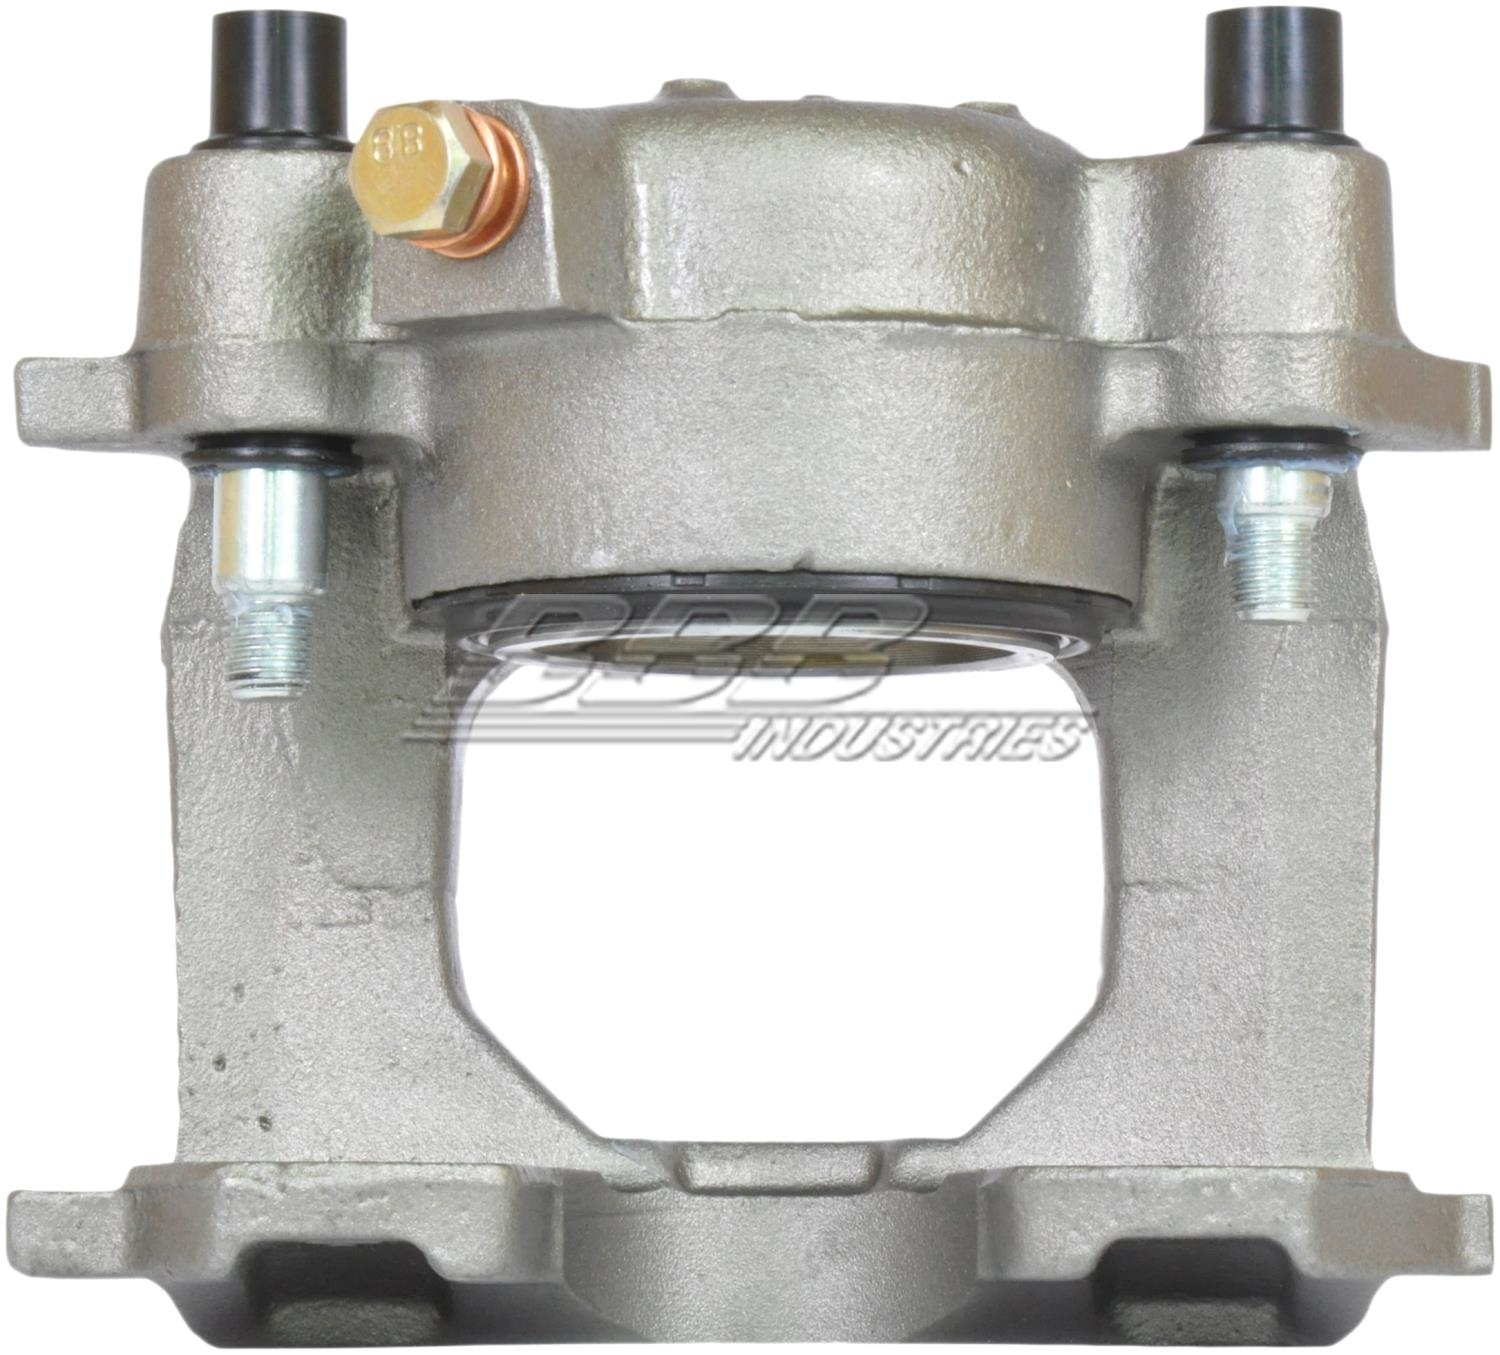 BBB INDUSTRIES - Reman Caliper w/ Installation Hardware - BBA 97-17004A